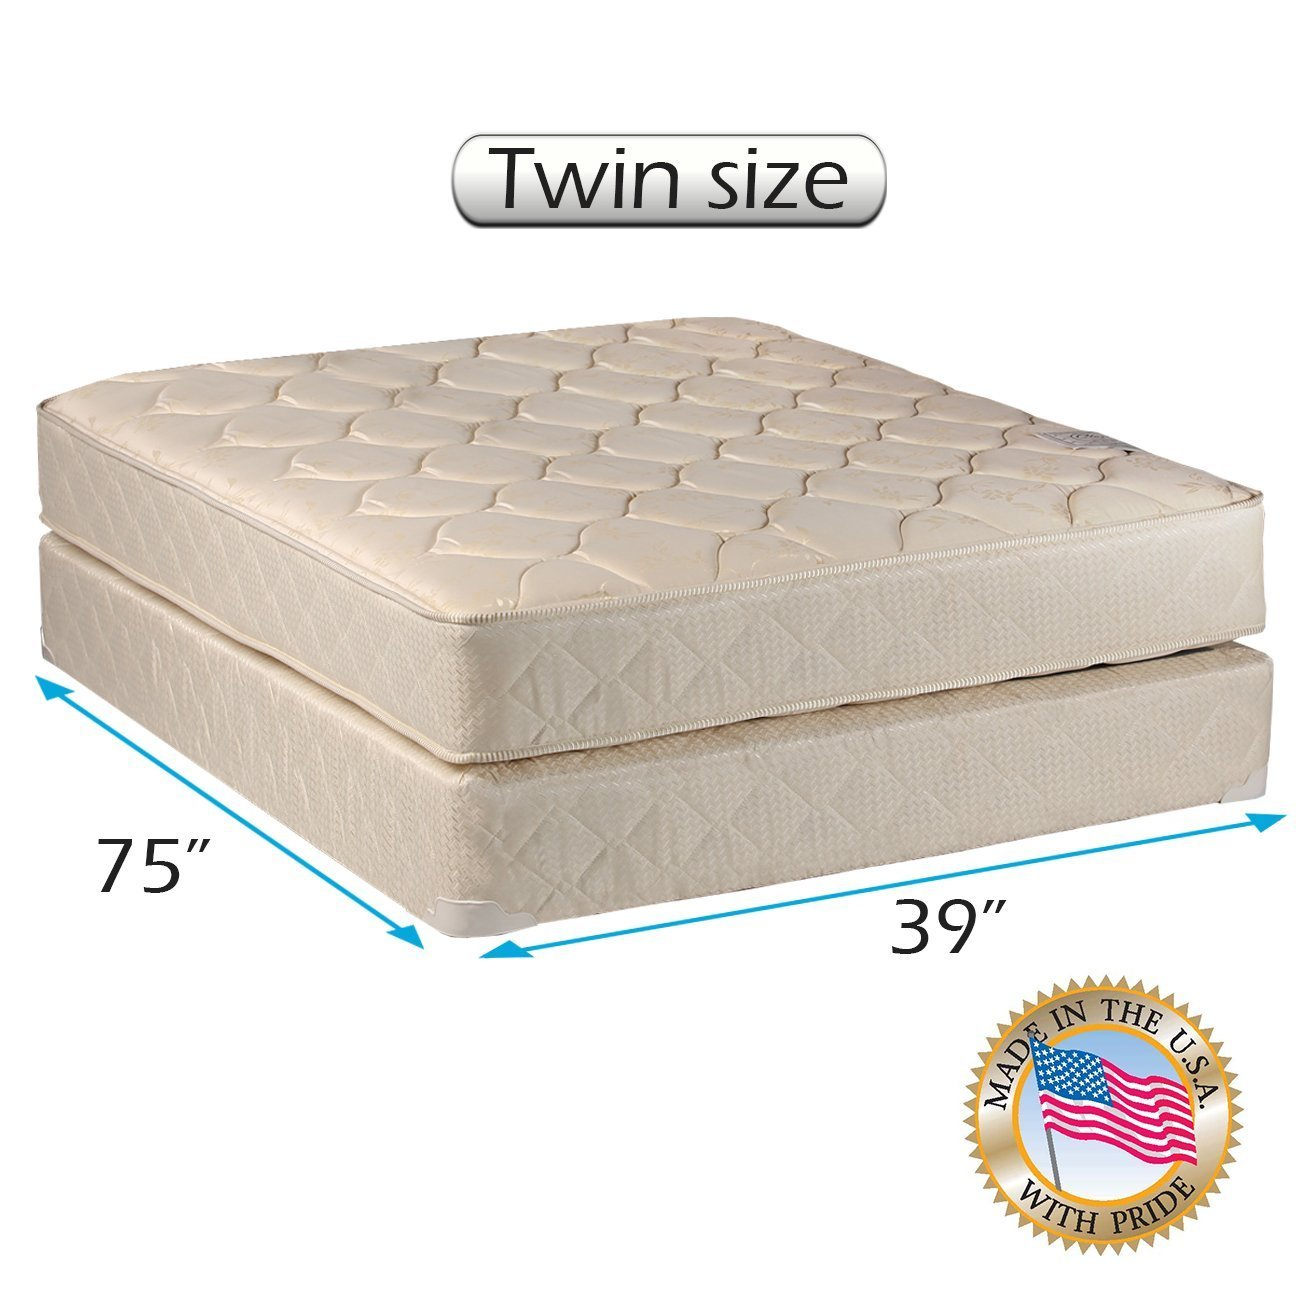 Comfort Classic Gentle Firm Twin Size (39''x75''x9'') Mattresses and Box Spring Set - Fully Assembled, Orthopedic, Good for Your Back, Longlasting and Super Quality by Dream Solutions USA by Comfort Bedding